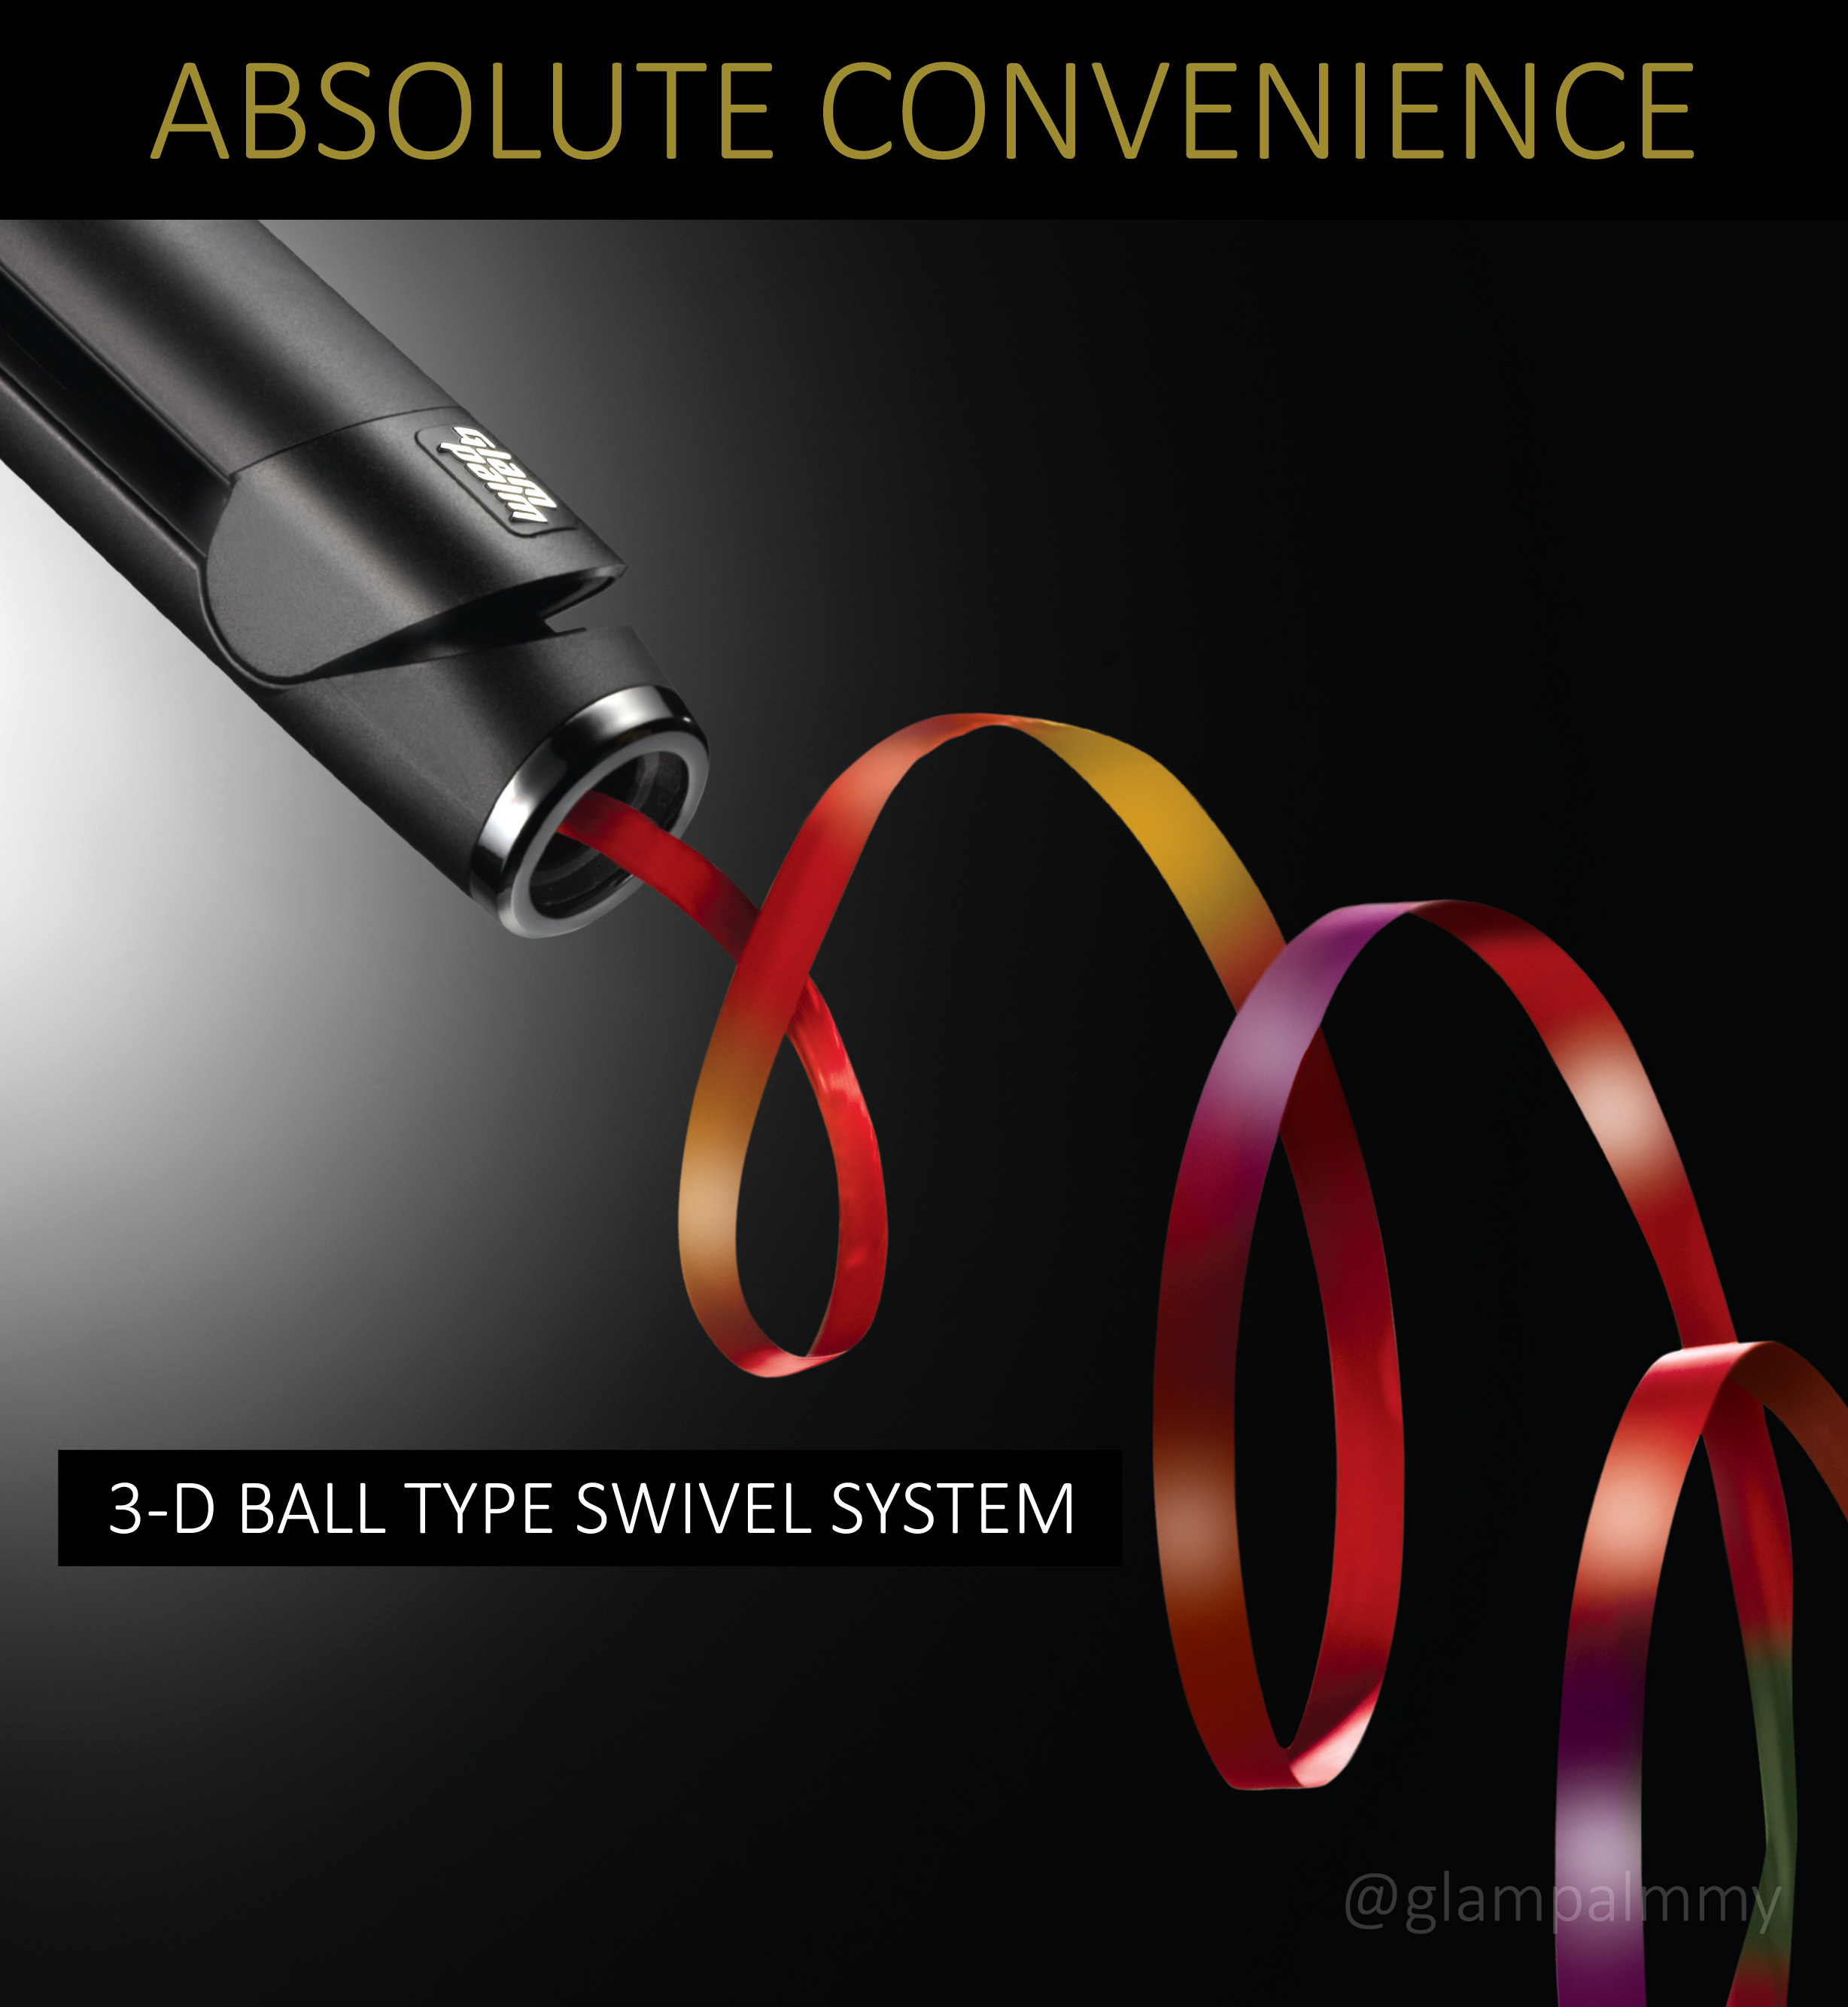 3-D 360° Swiveling and Pivoting Cord